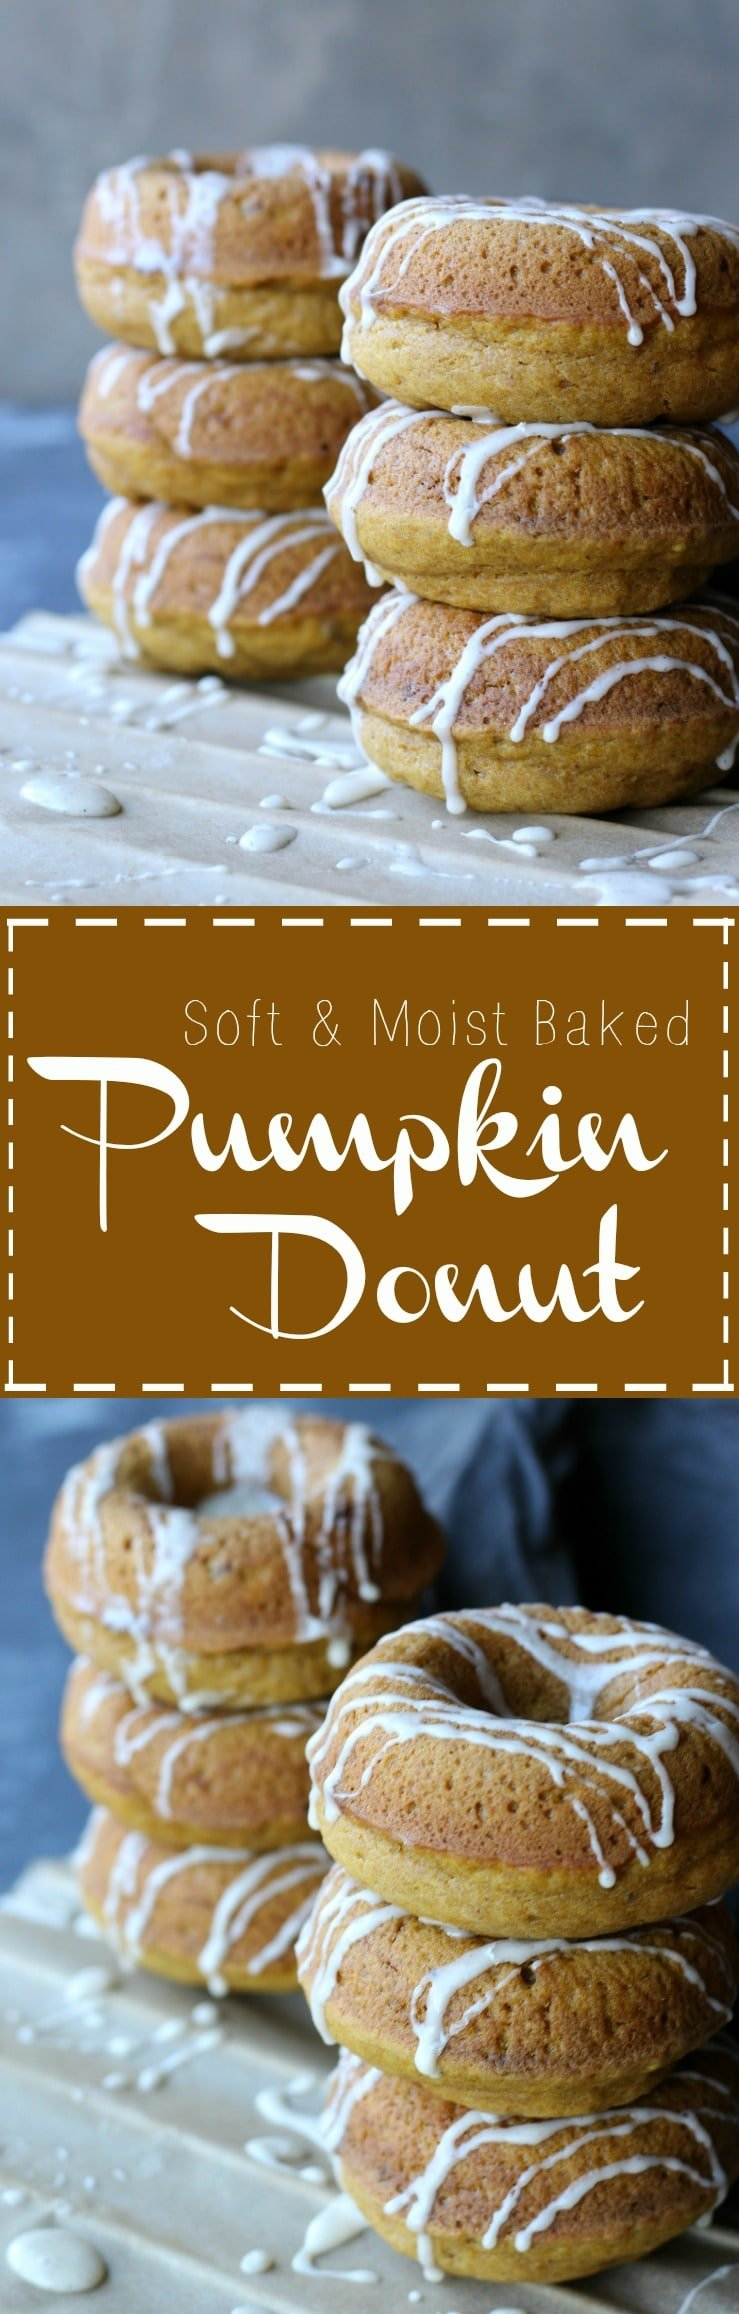 Soft Moist Easy Baked Pumpkin Donuts